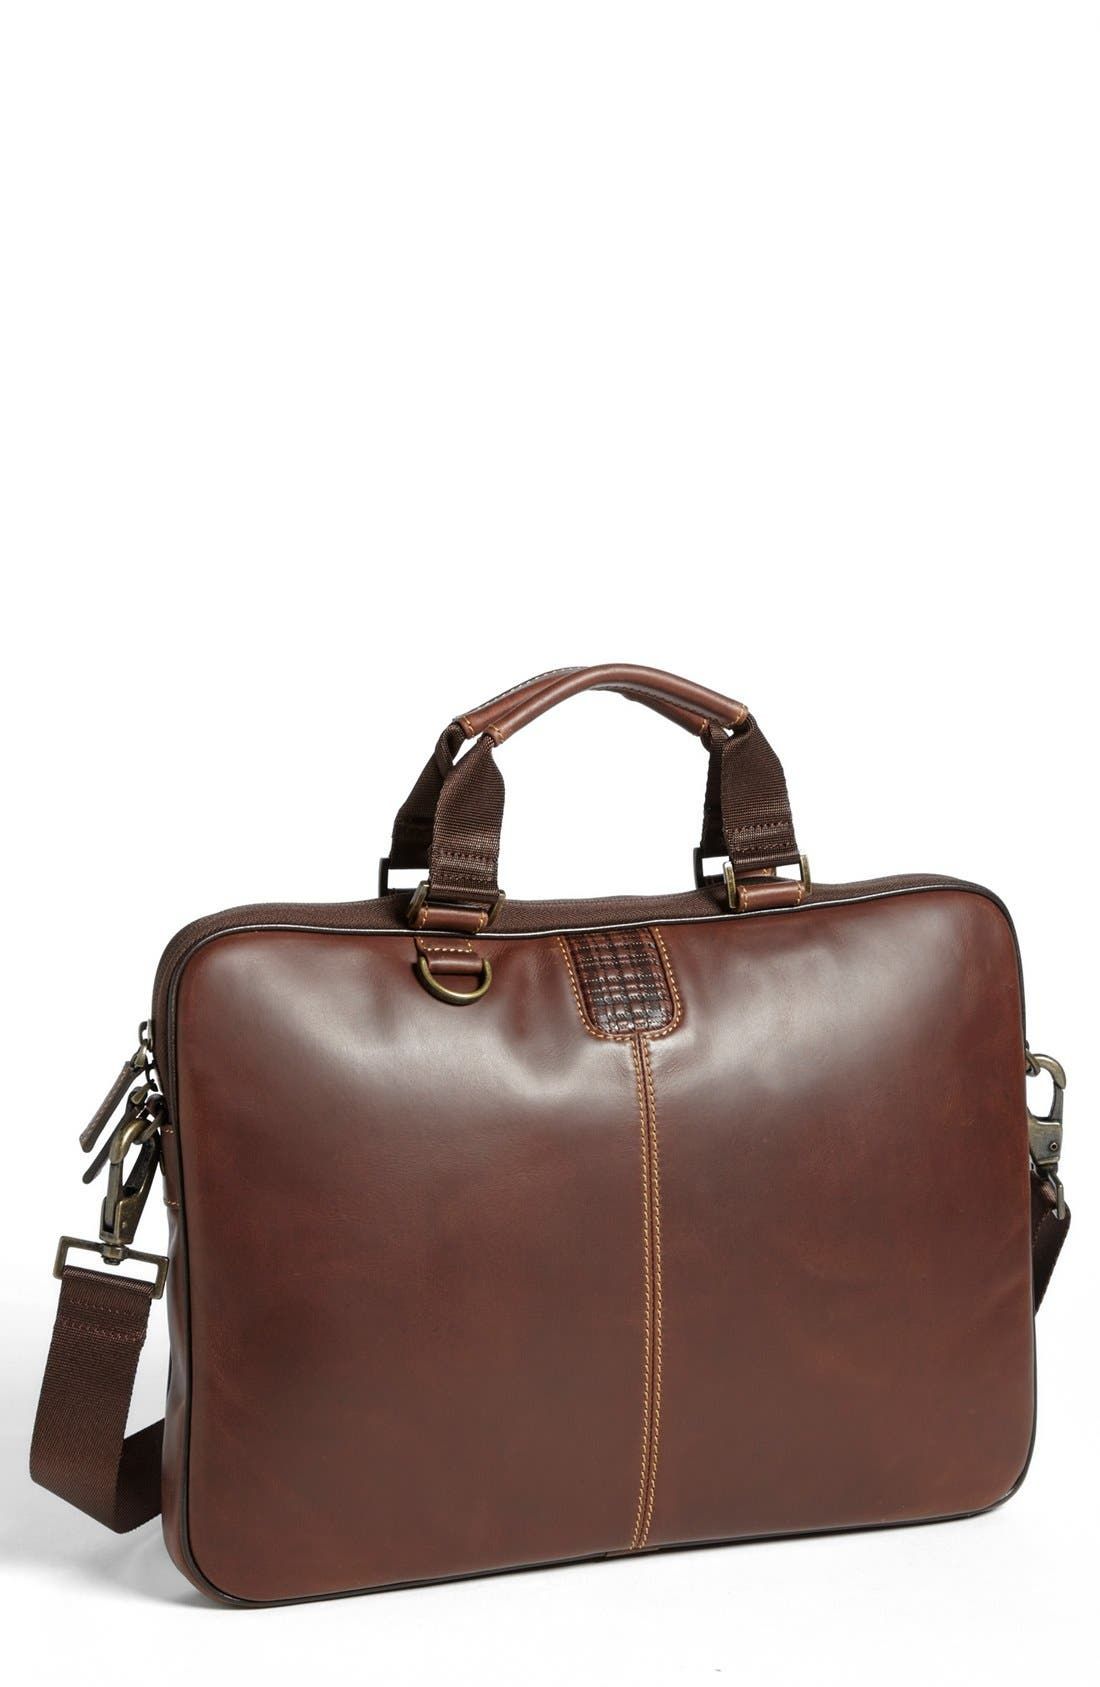 BOCONI 'Bryant' Slim Leather Laptop Briefcase, Main, color, ANTIQUE MAHOGANY/ HOUNDSTOOTH